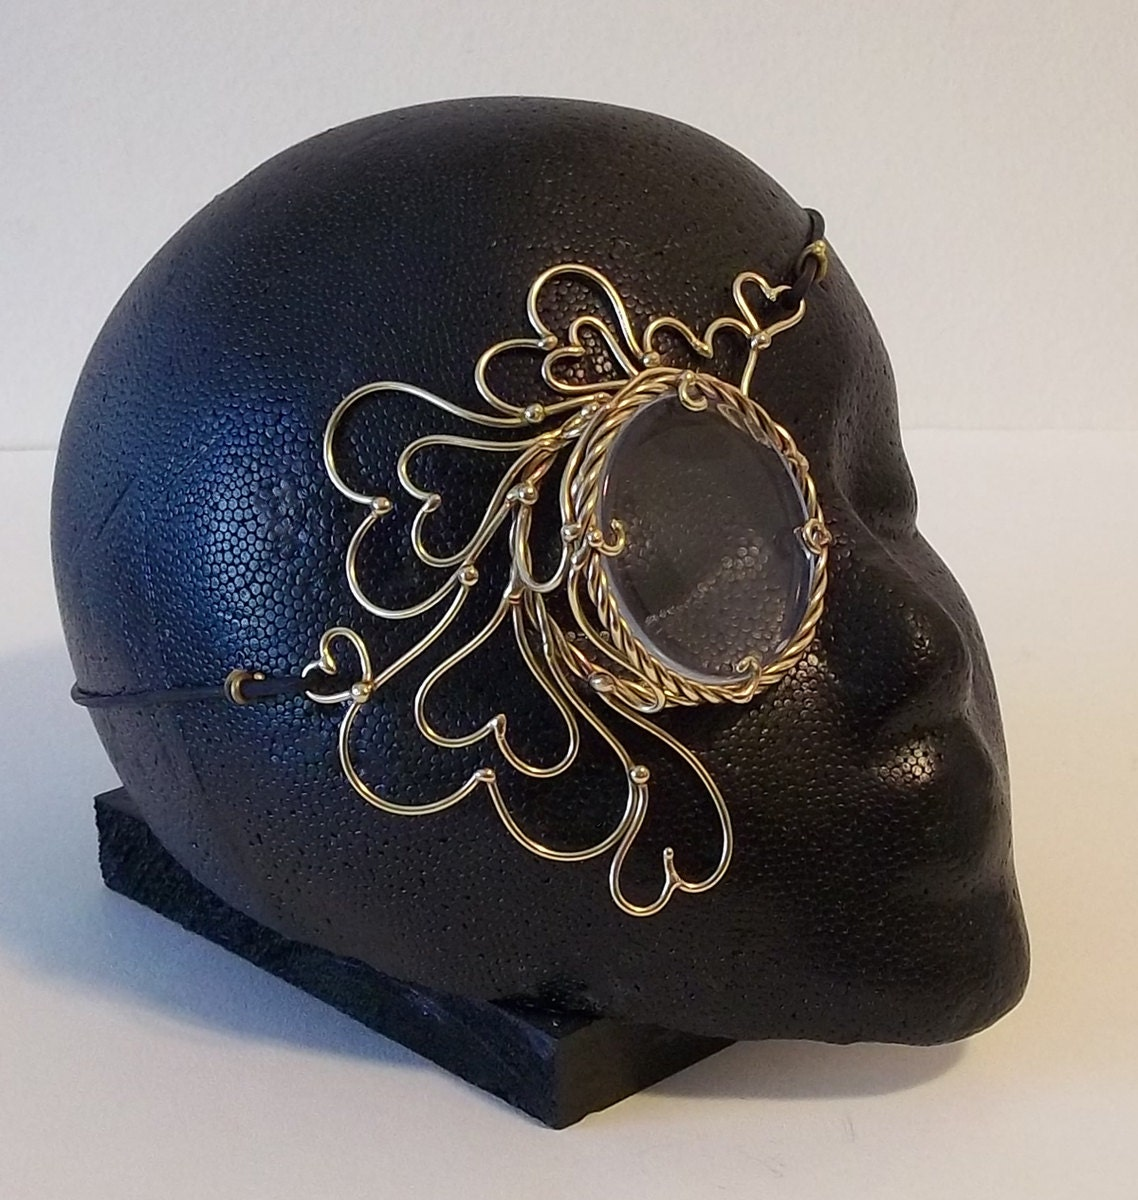 Bronze Queen of Hearts Steampunk Monocle - BronzeSmith